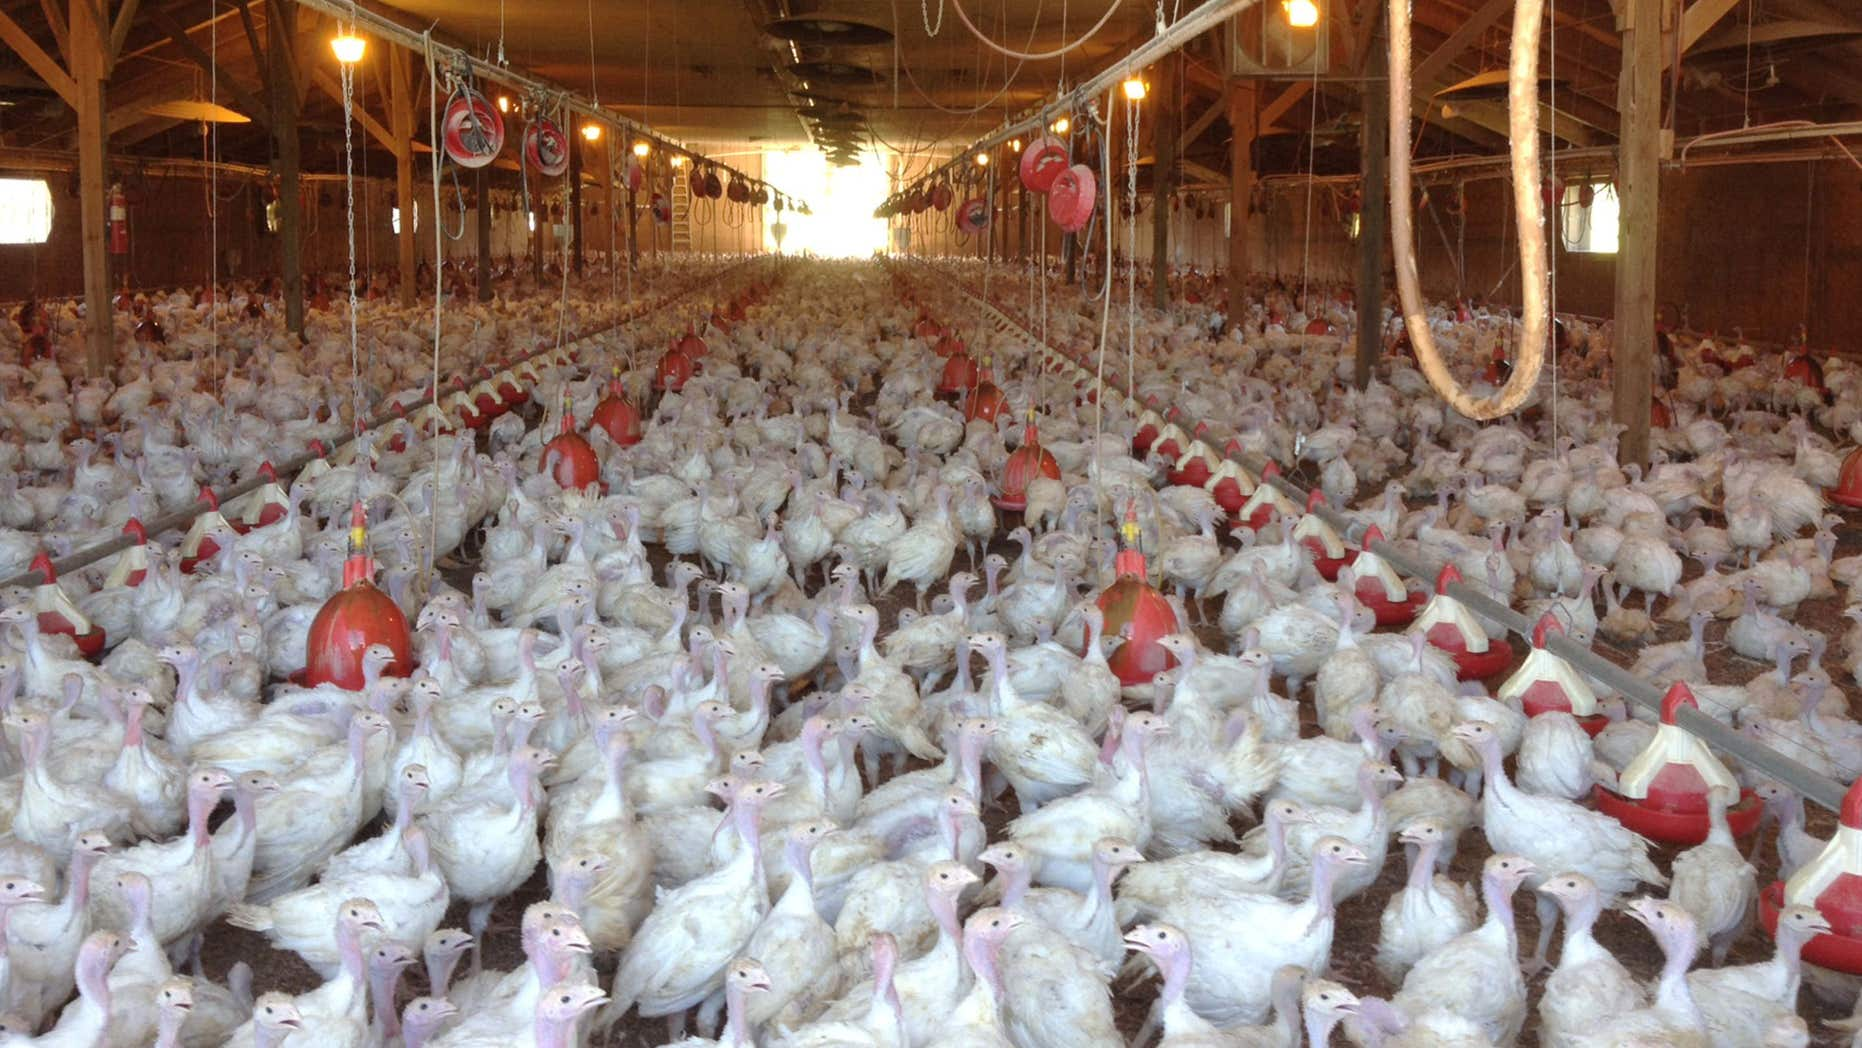 In this photo provided by Bethany Hahn is a flock of turkeys at a Minnesota poultry farm.